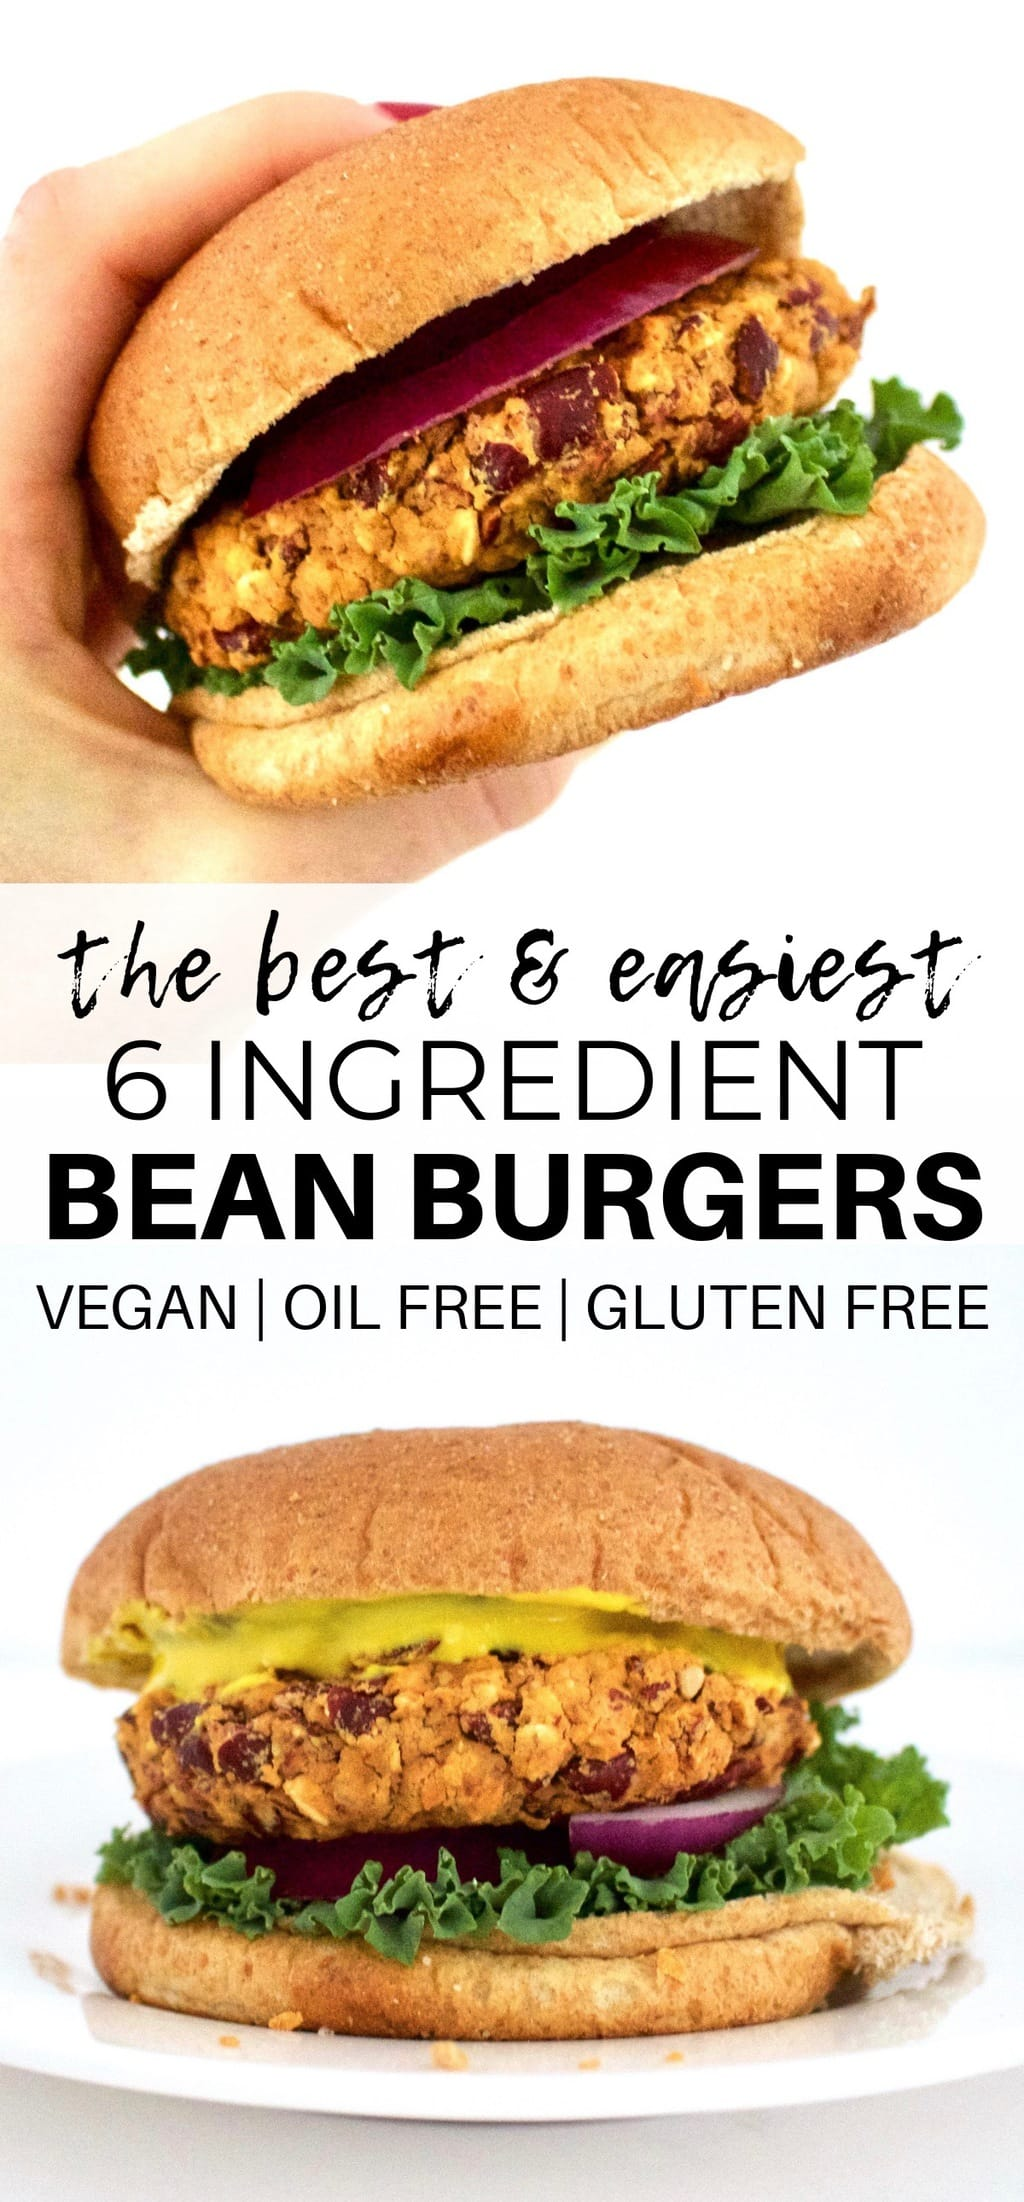 Kidney Bean Burgers Vegan Gluten Free Low Fat